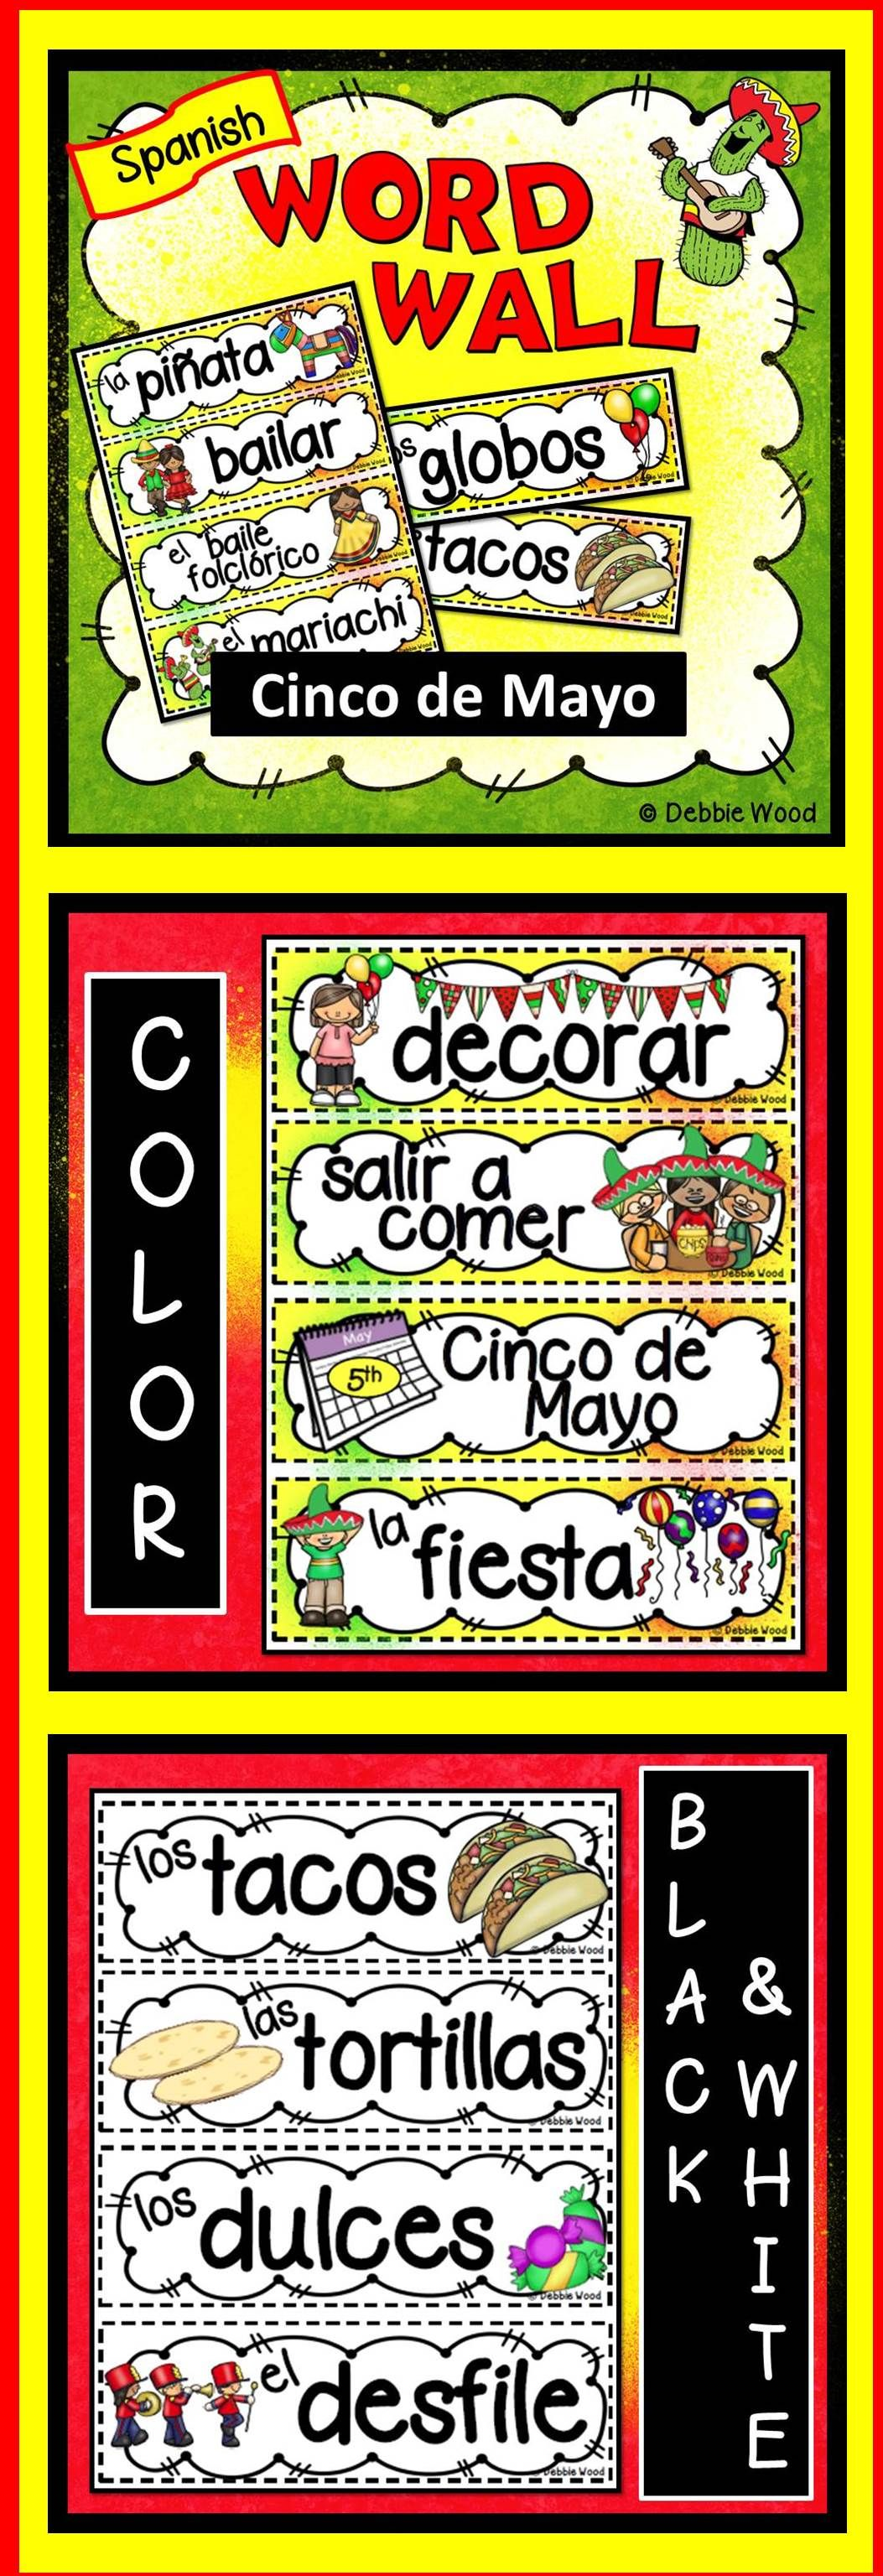 Worksheets For Letters Excel Spanish Cinco De Mayo  Language Classes Help Teaching And  Worksheet Significant Figures Word with Sentence Making Worksheets Pdf Cinco De Mayo Spanish Word Wall Chemical Nomenclature Worksheet Answers Excel